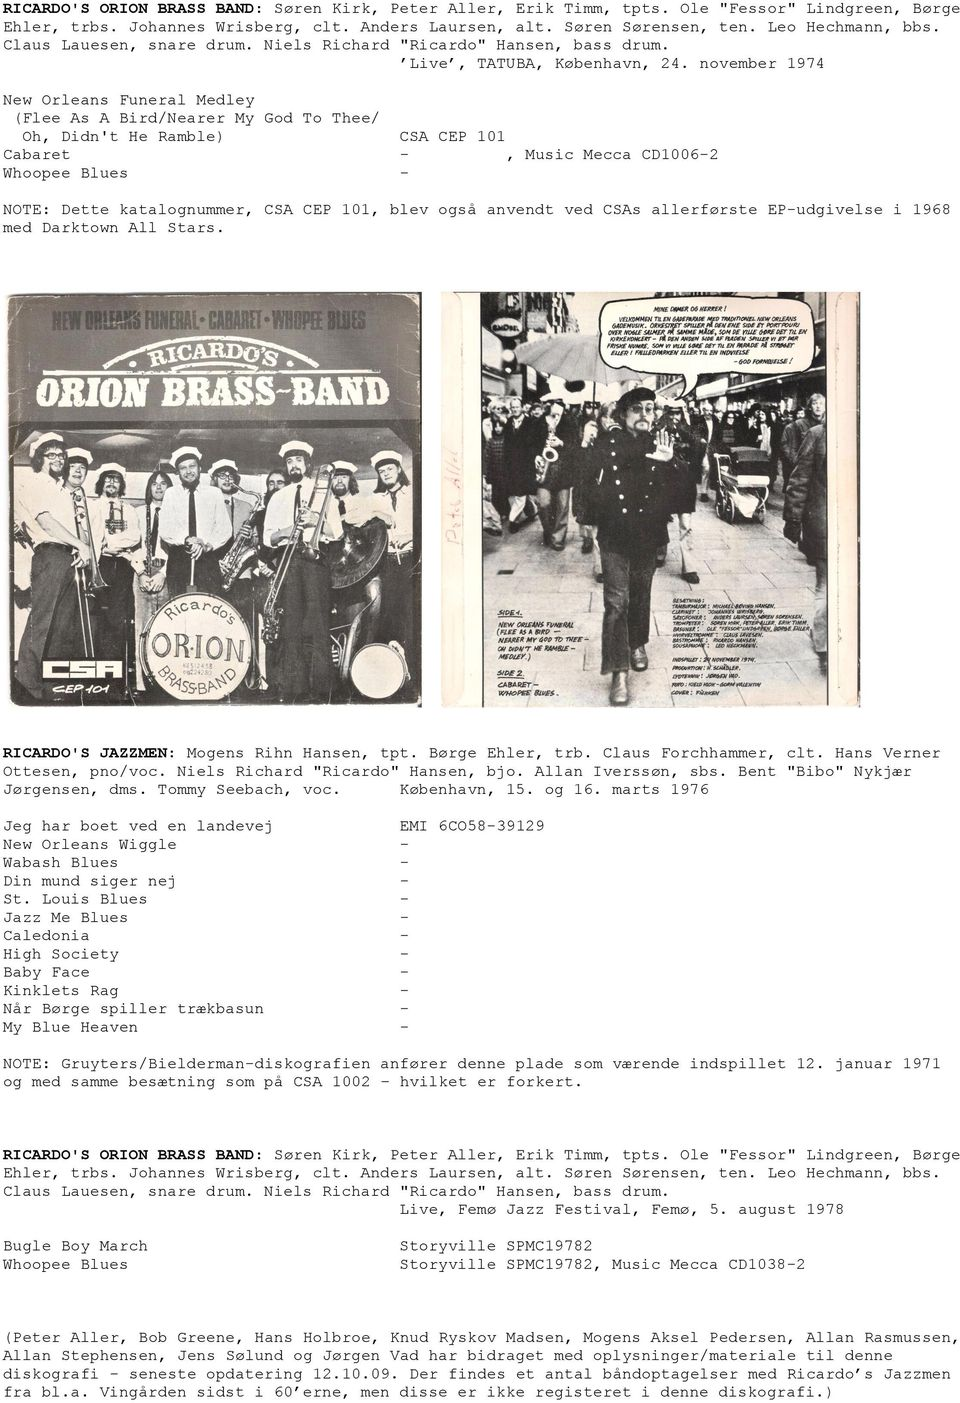 november 1974 New Orleans Funeral Medley (Flee As A Bird/Nearer My God To Thee/ Oh, Didn't He Ramble) Cabaret Whoopee Blues CSA CEP 101, Music Mecca CD1006-2 - NOTE: Dette katalognummer, CSA CEP 101,